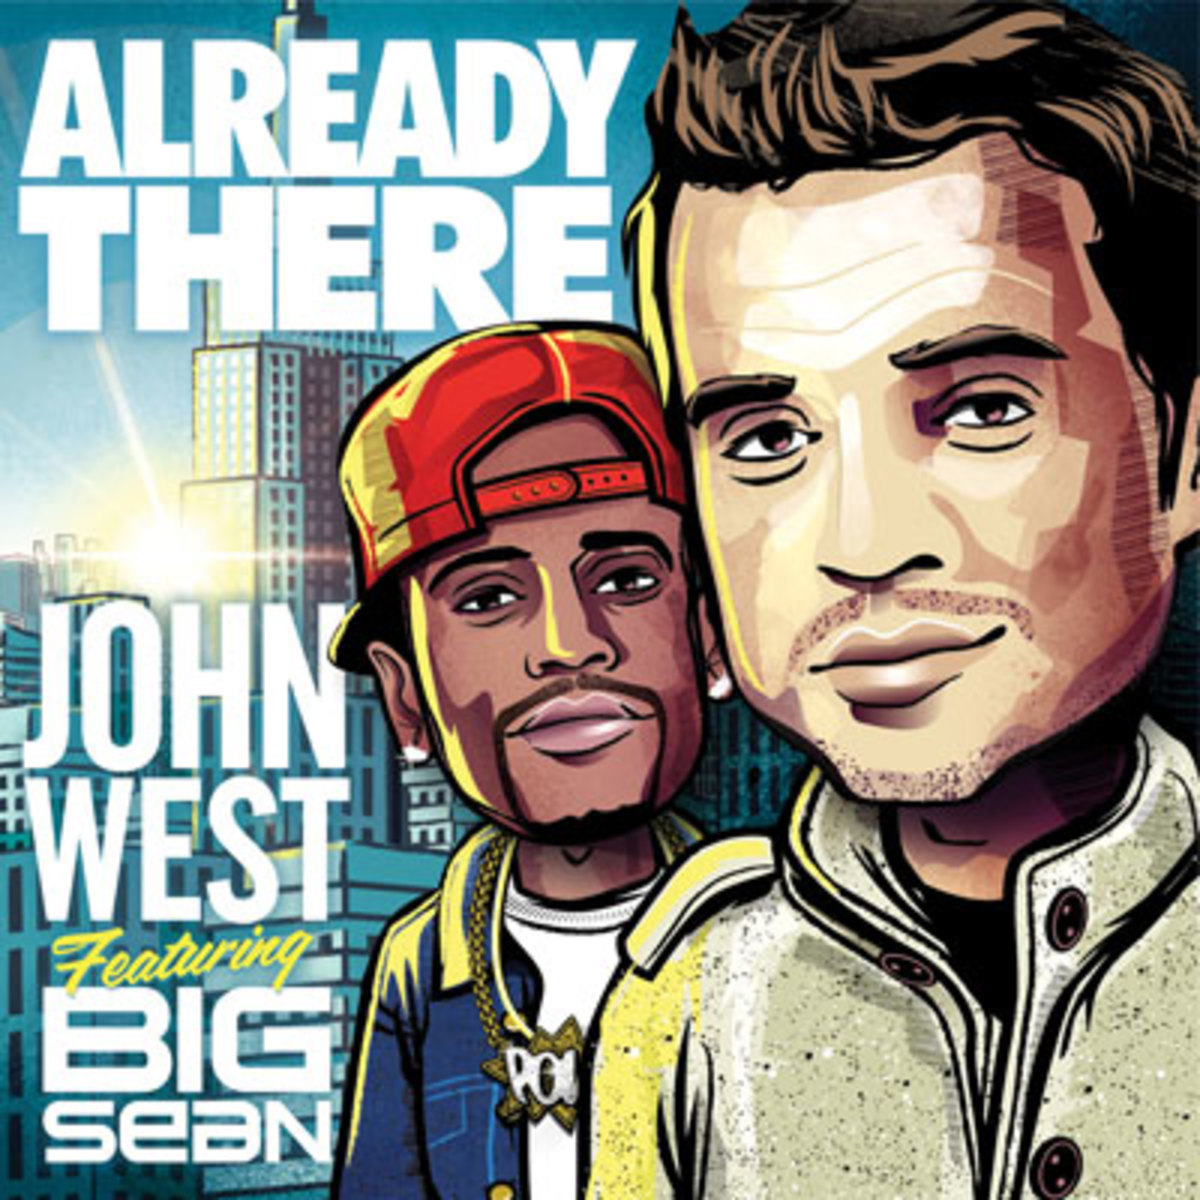 johnwest-alreadythere.jpg